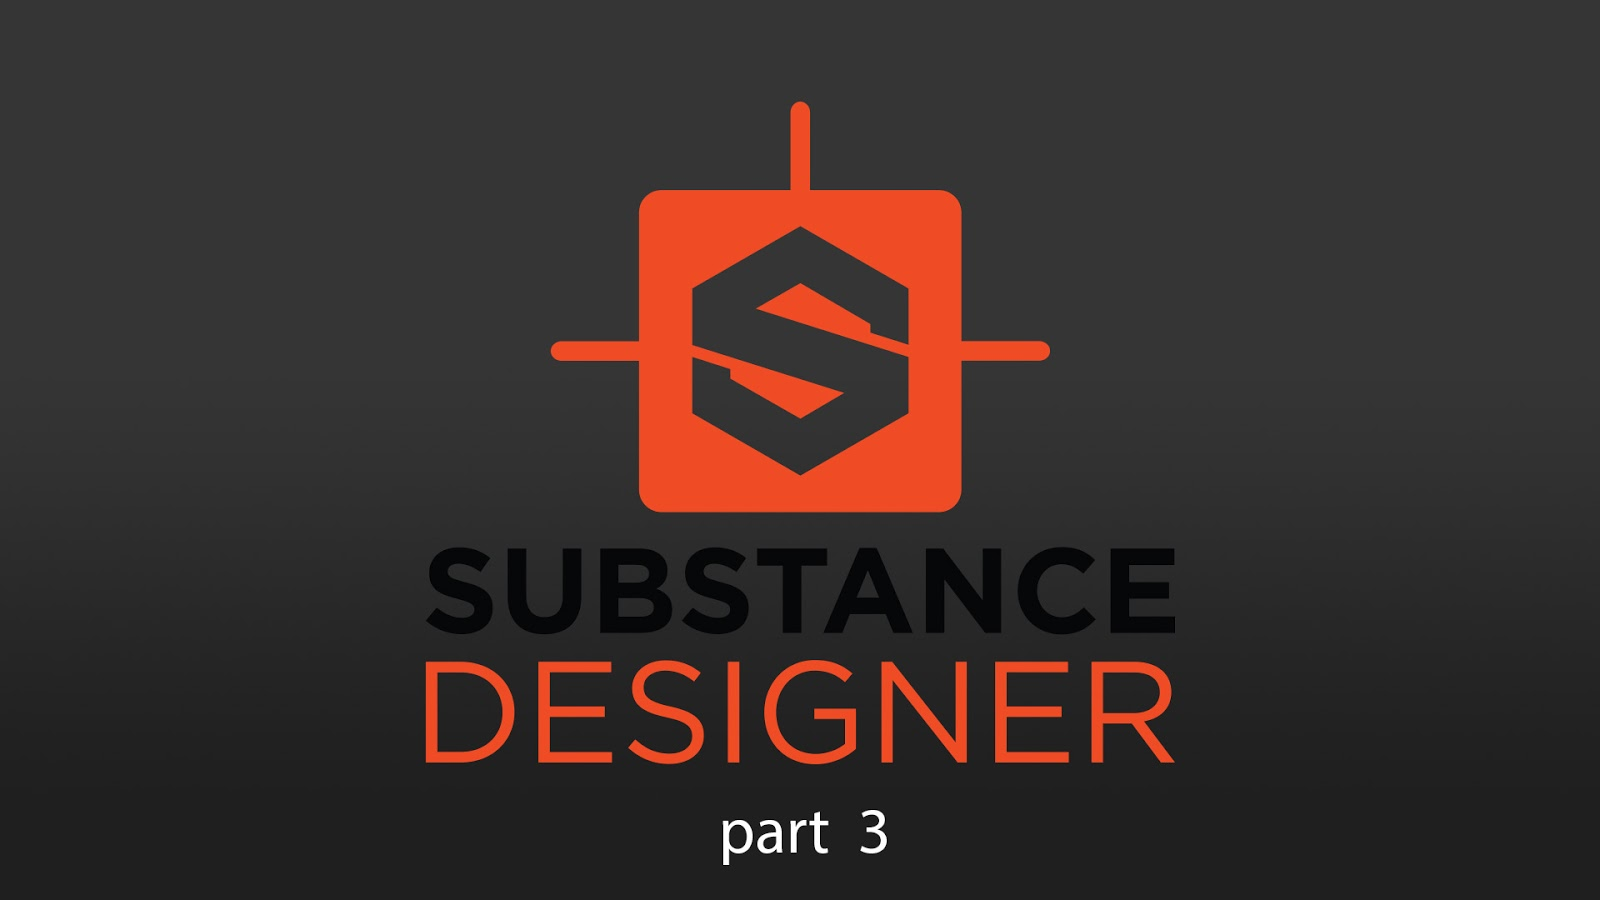 Substance_designer_part3_youtube.jpg